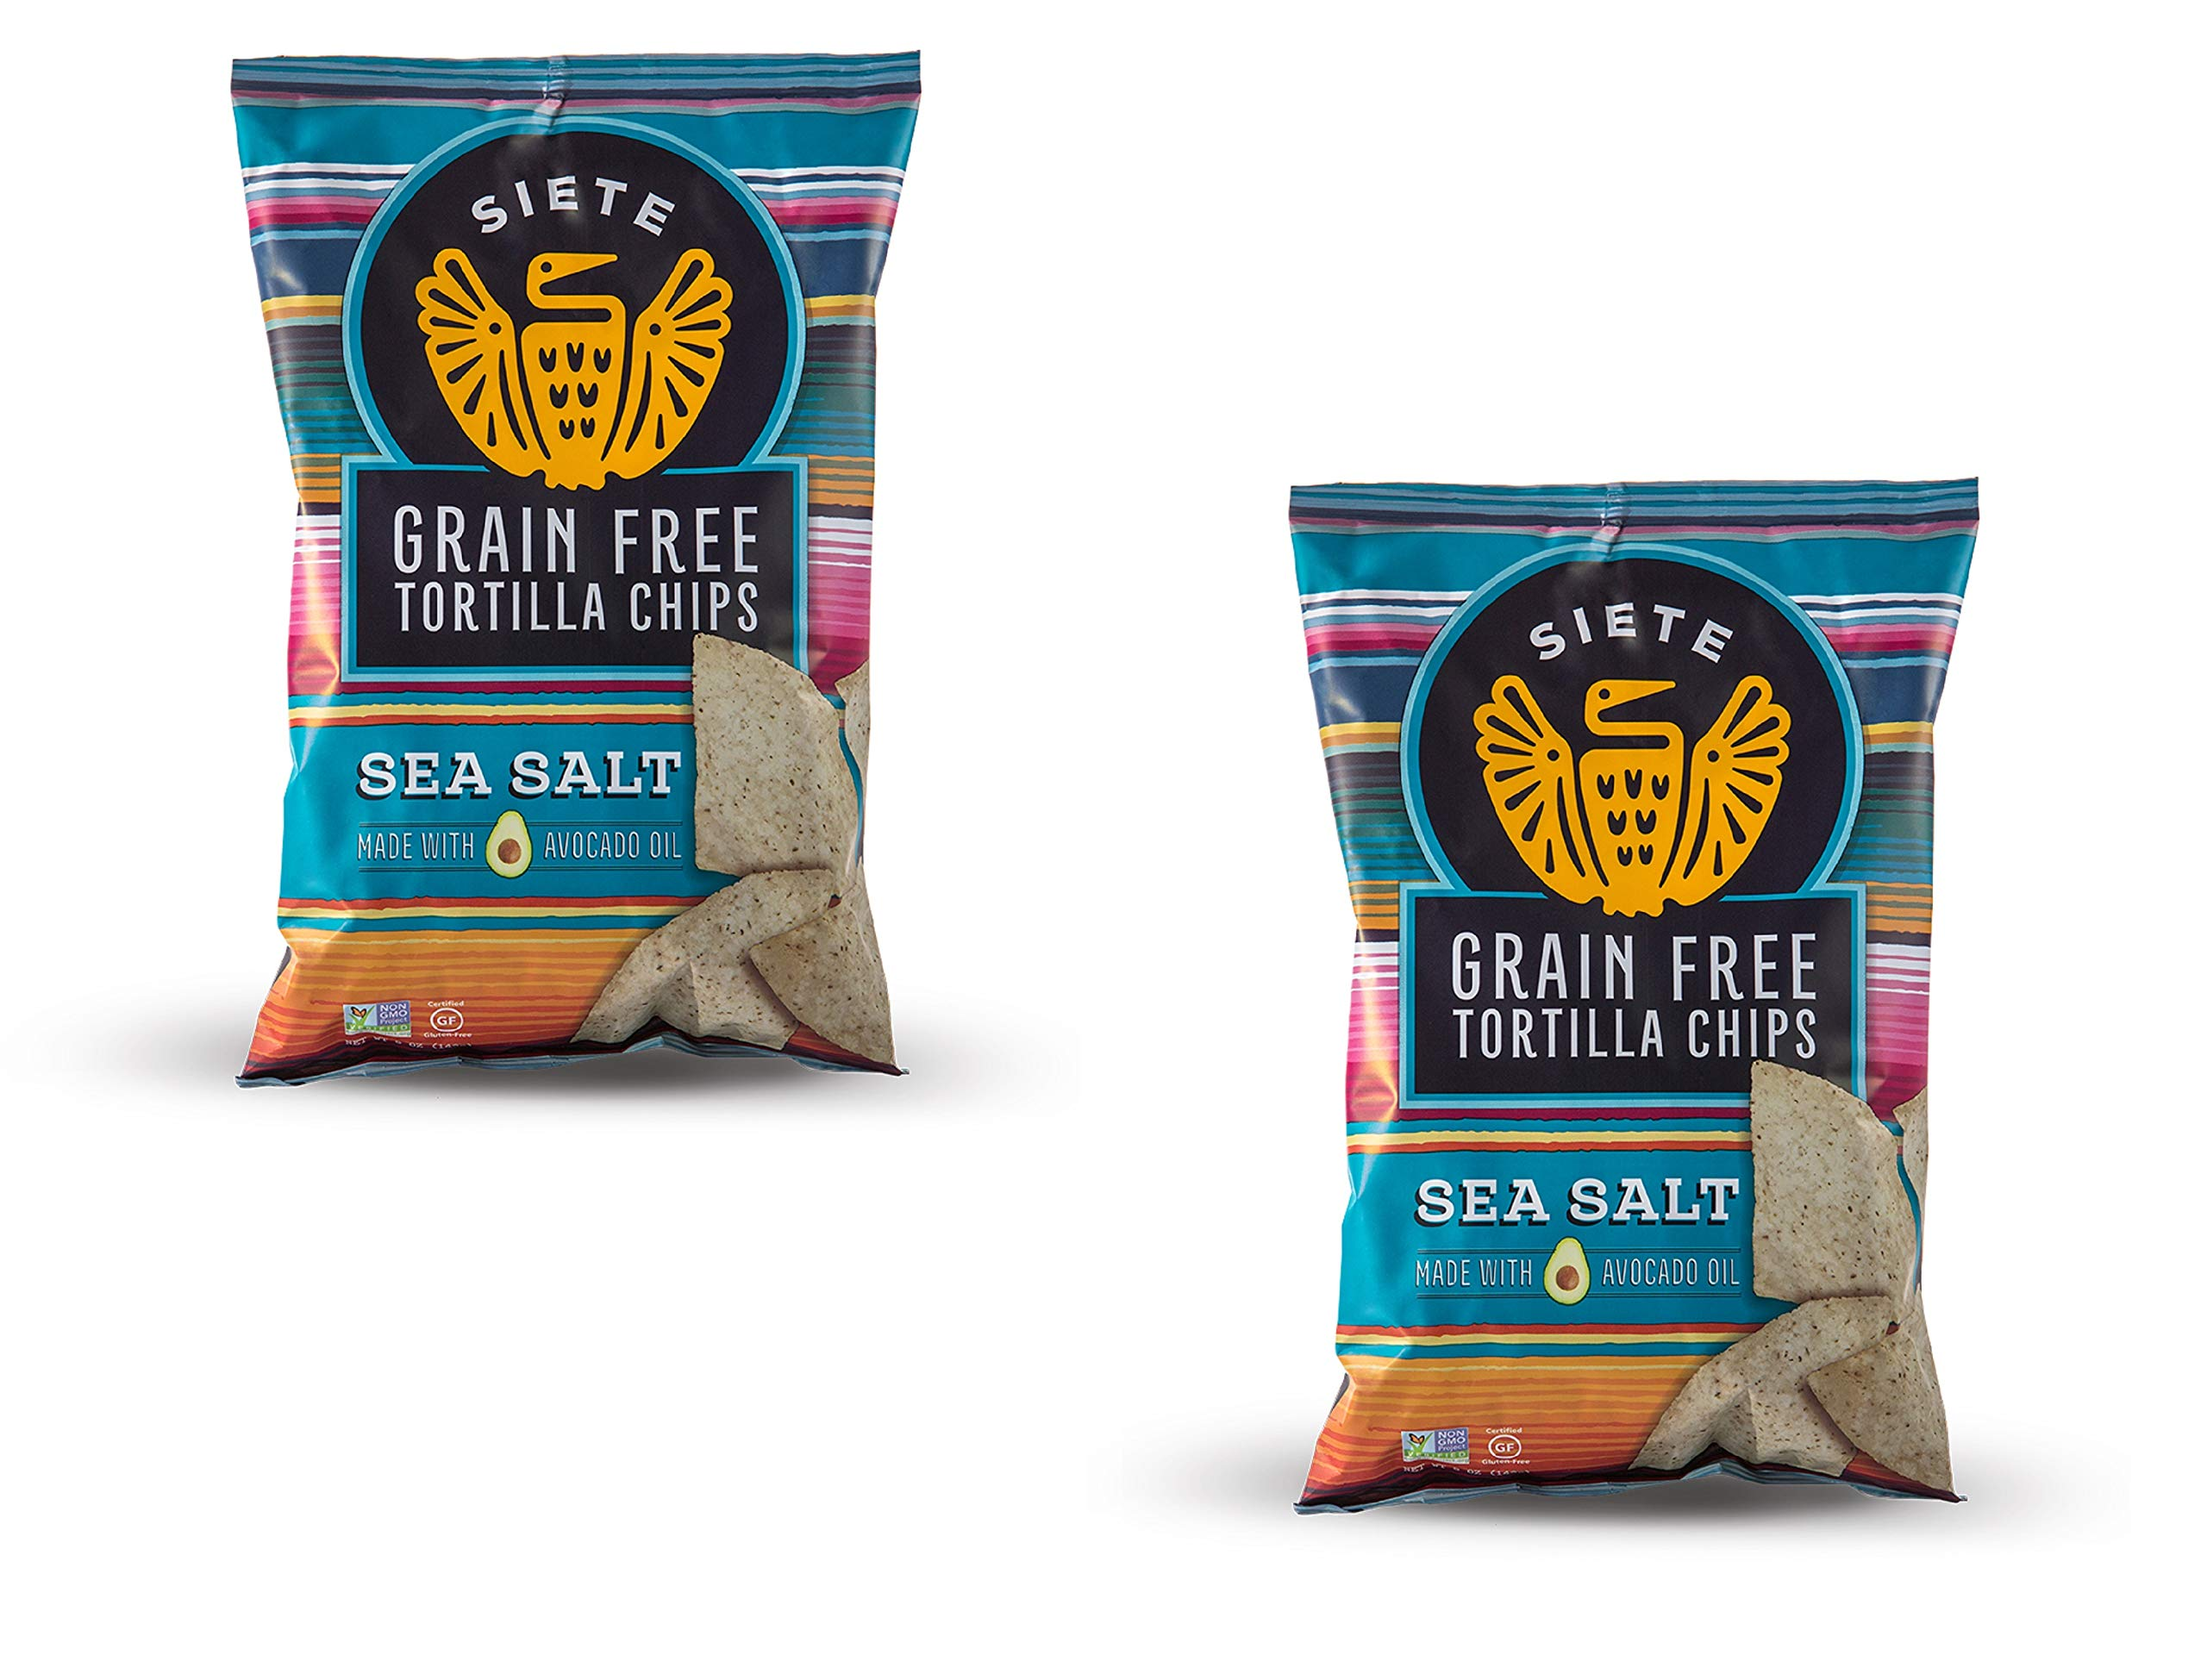 Siete Sea Salt Grain Free Tortilla Chips, 5 oz bags, 2-Pack by Siete